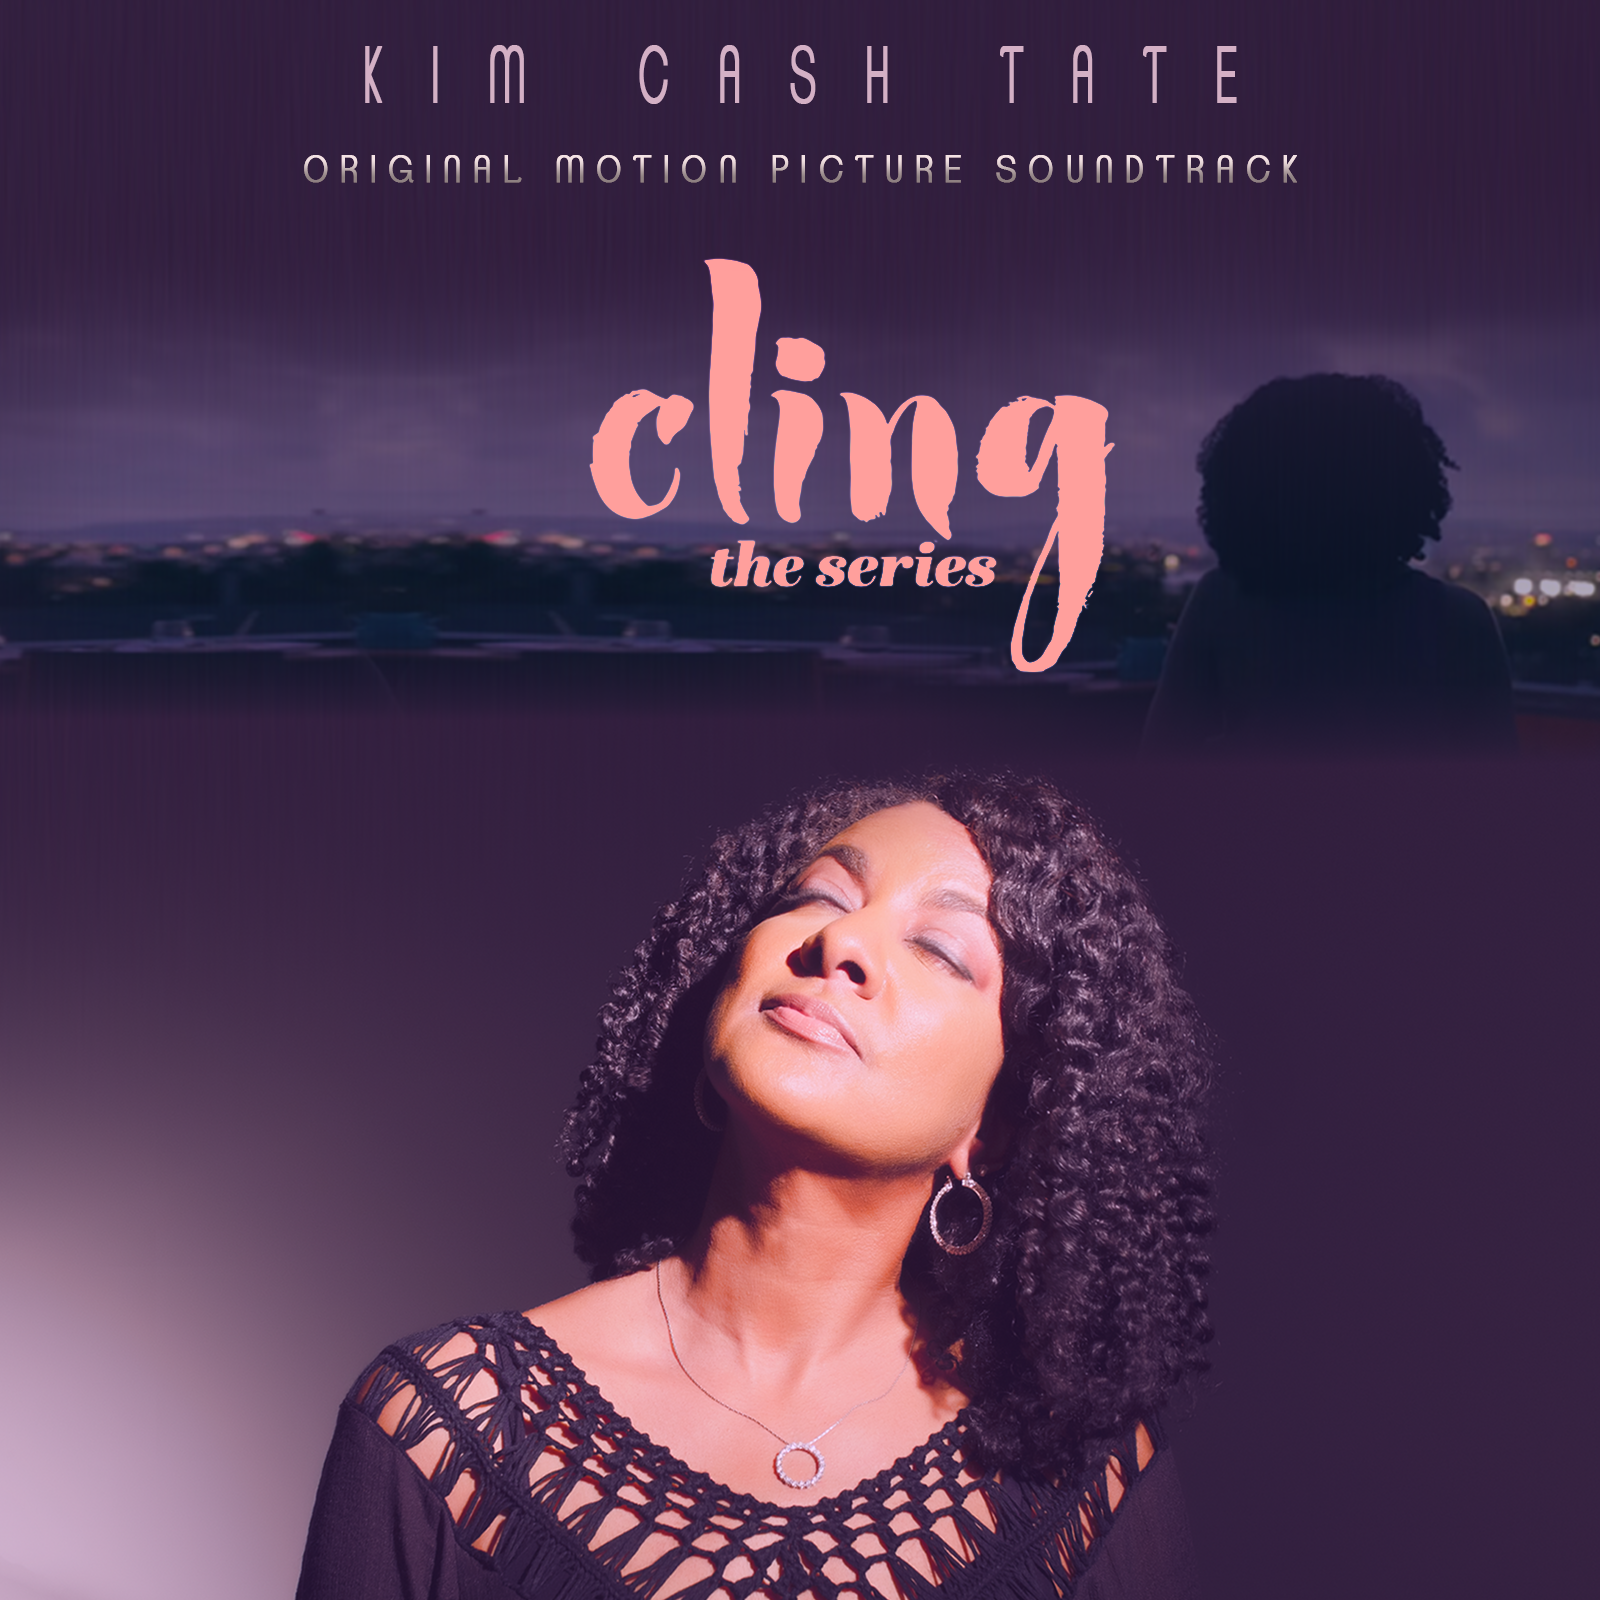 CLING SOUNDTRACK COVER ART - Kiim Cash Tate.png